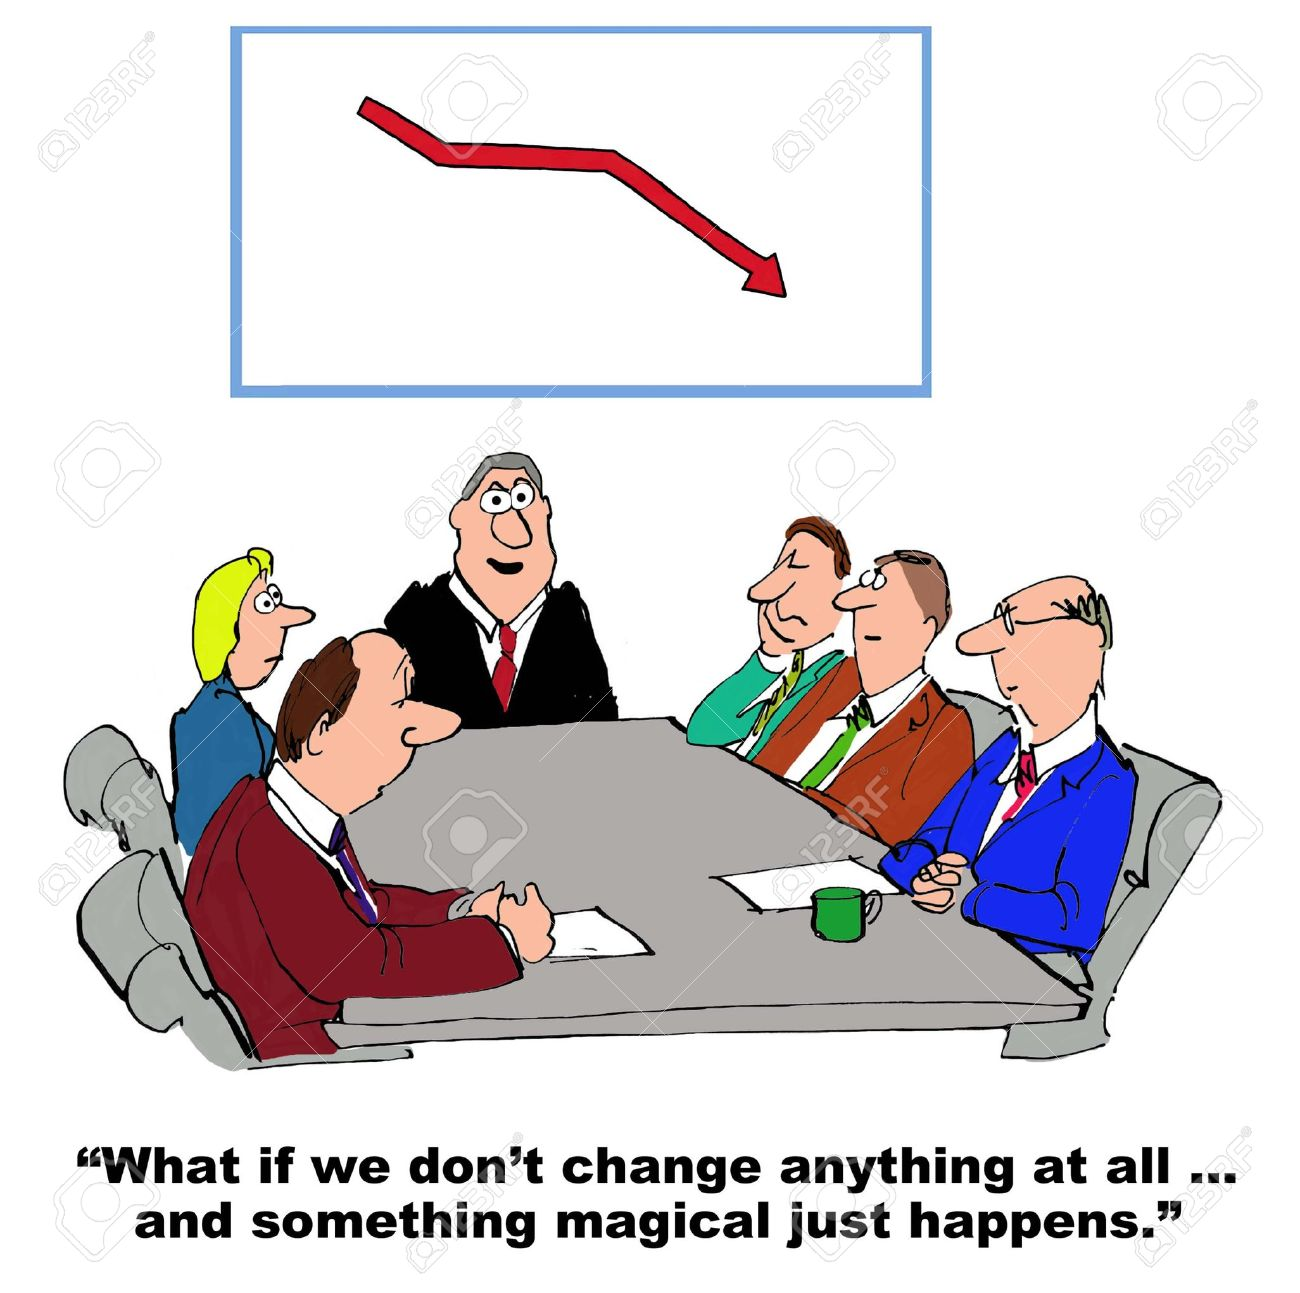 Business cartoon where the manager is resisting change management. - 41343601